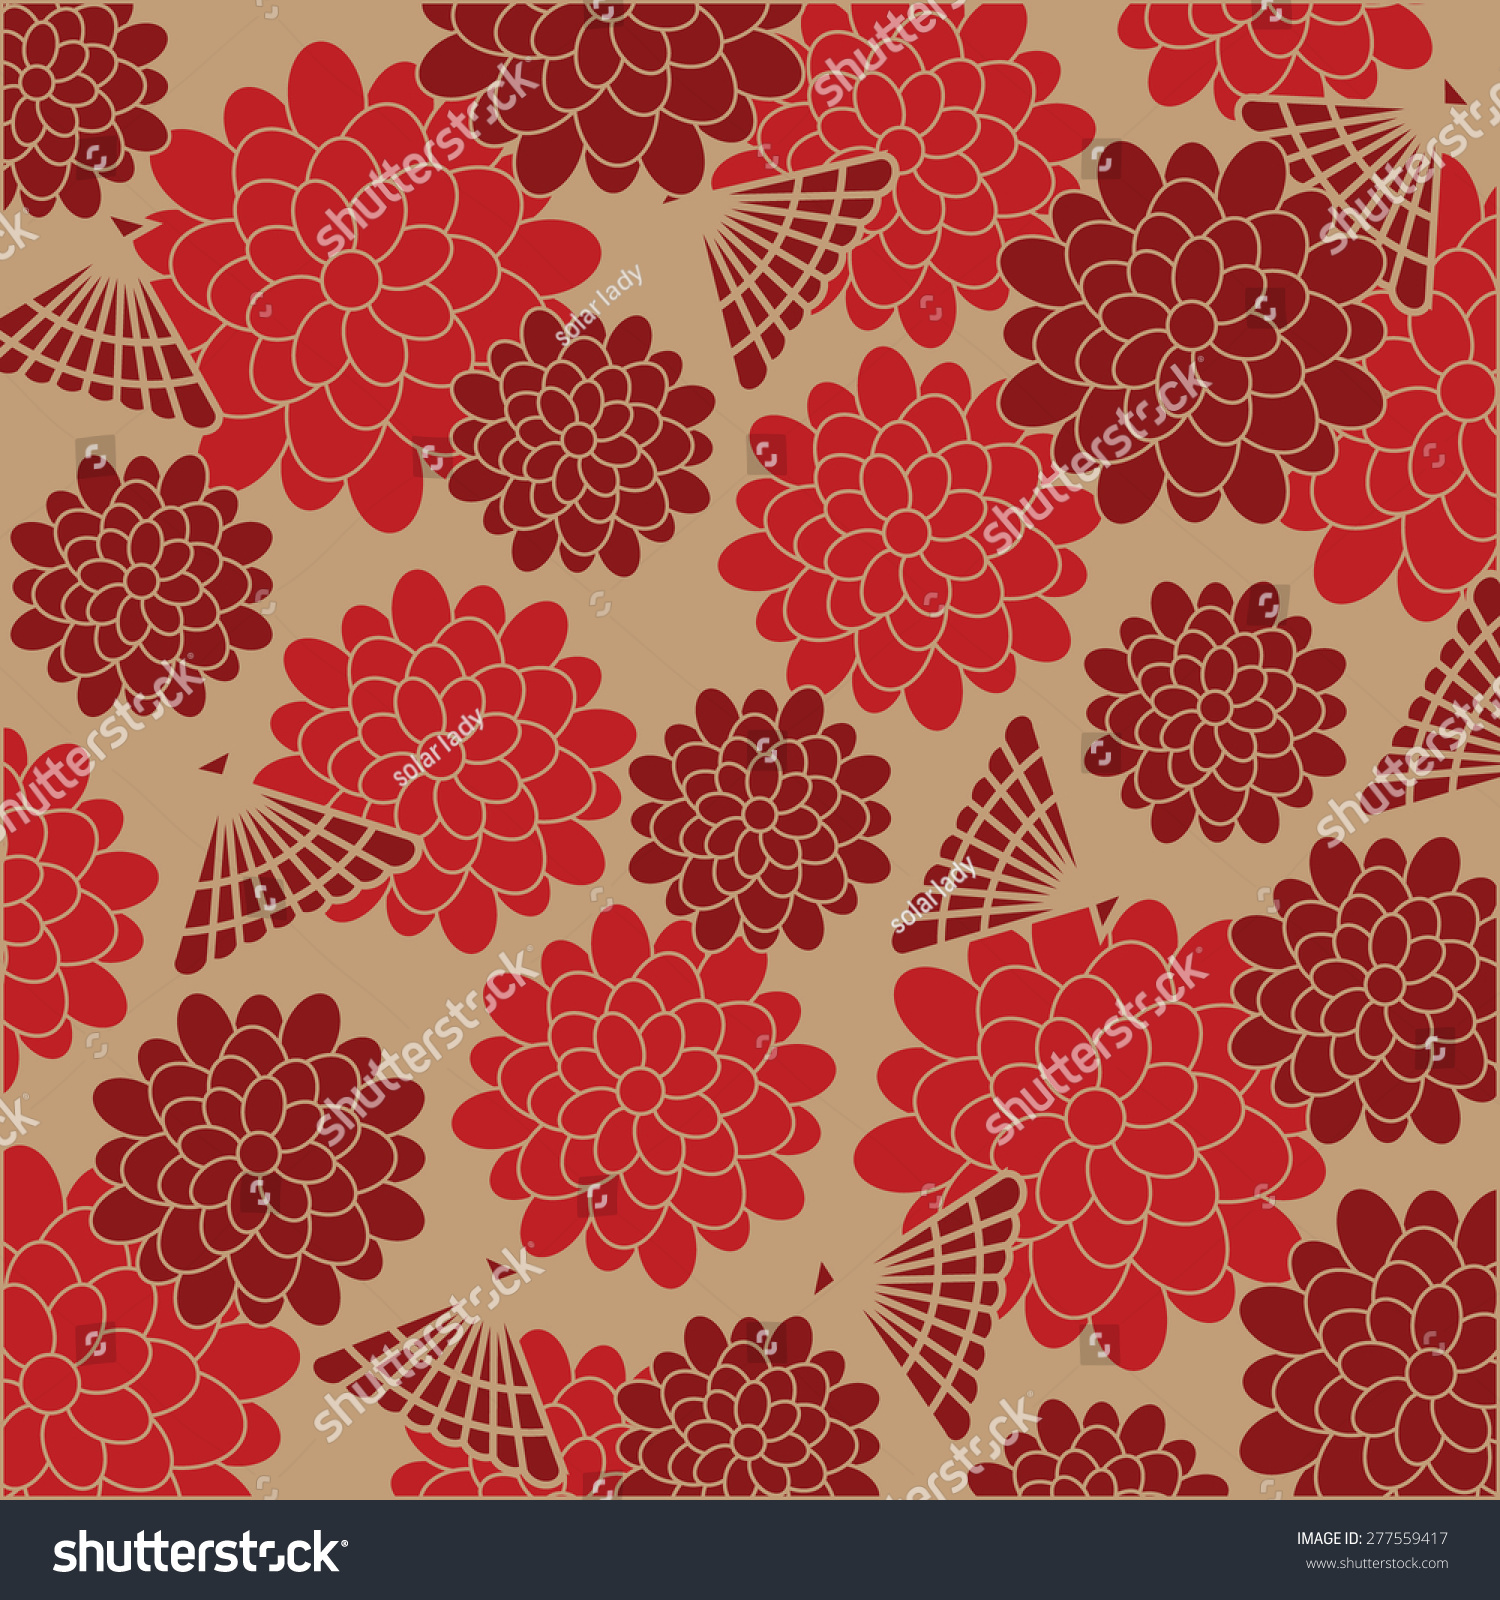 Japanese Floral Background Vector Illustration Stock Vector